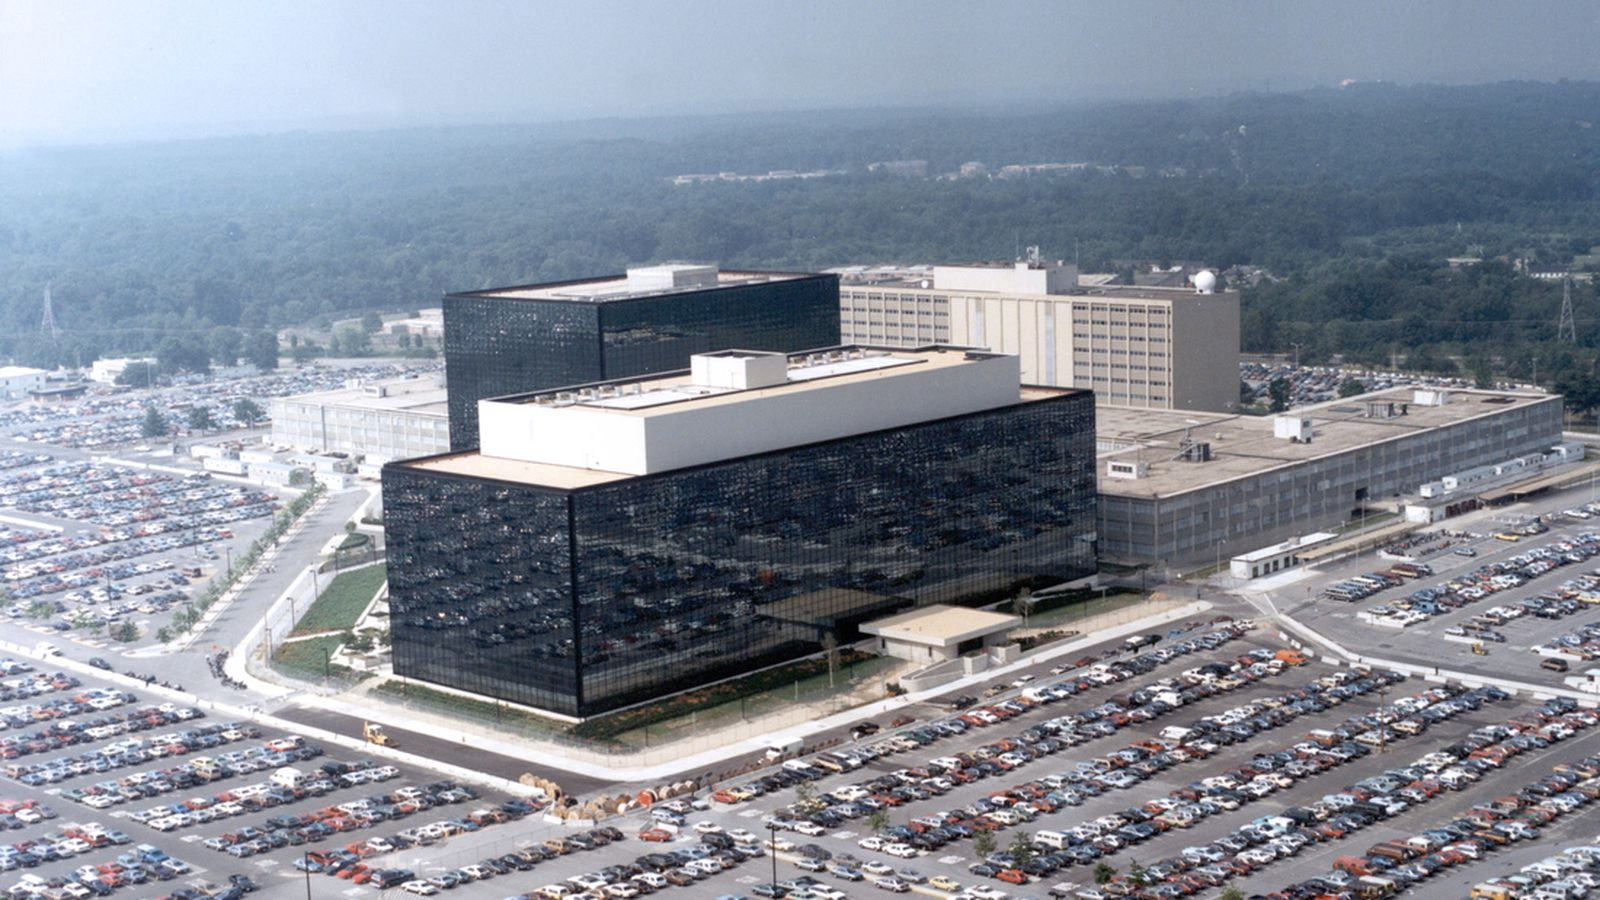 Government contractor leaks massive surveillance effort by nsa fbi on consumer services the verge